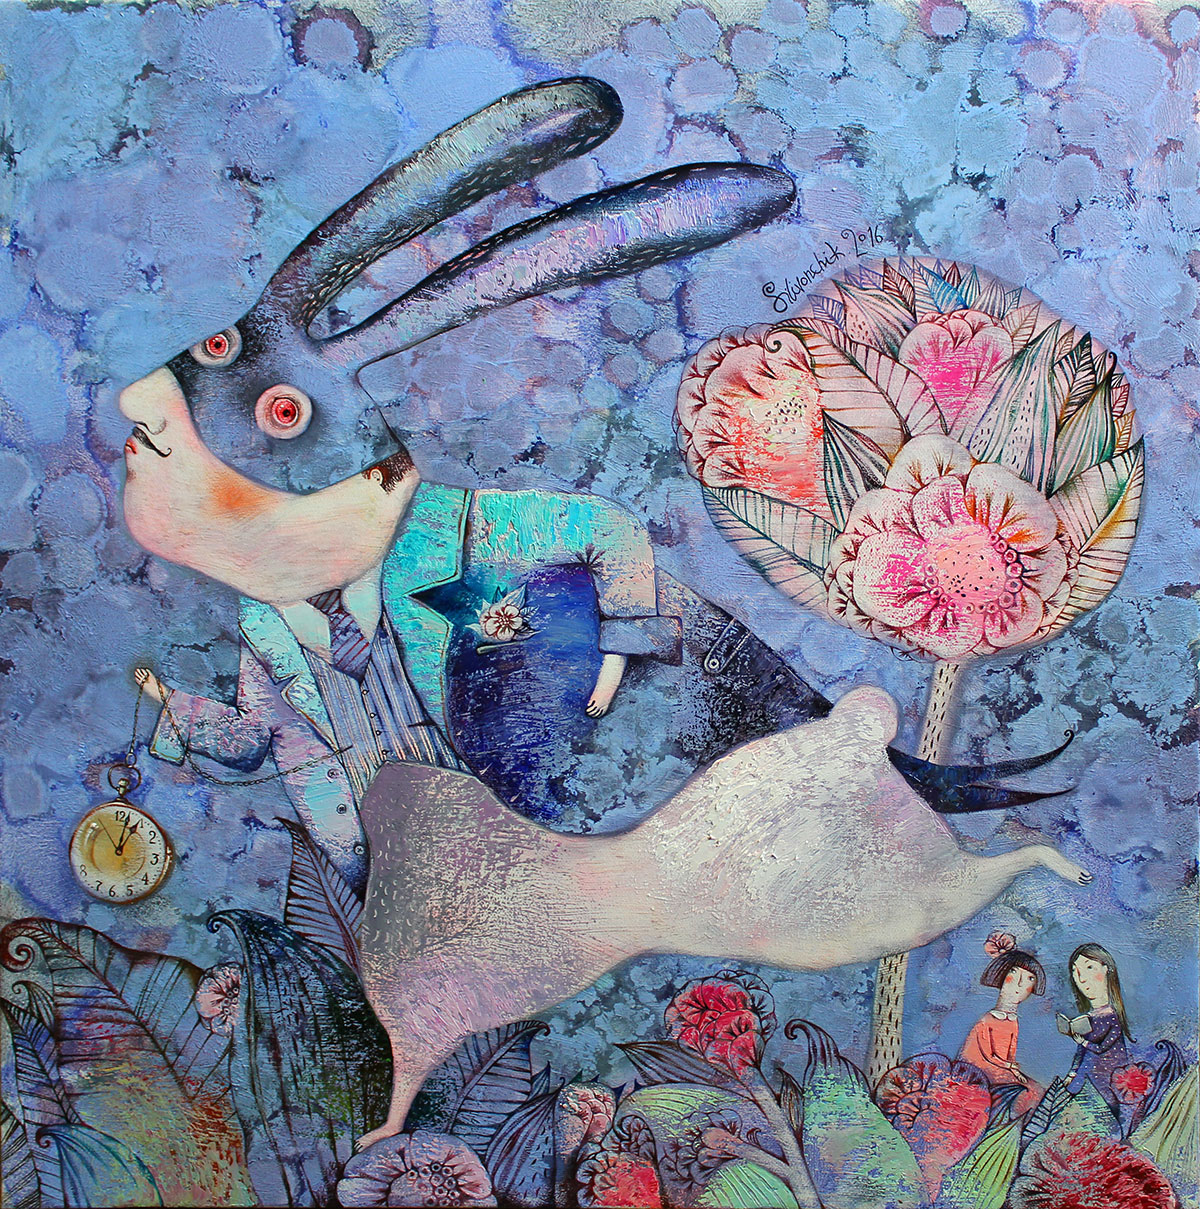 White Rabbit with Black Ears (Alice in Wonderland), 2016, Oil on Canvas, 26 x 26 in (65 x 65 cm)